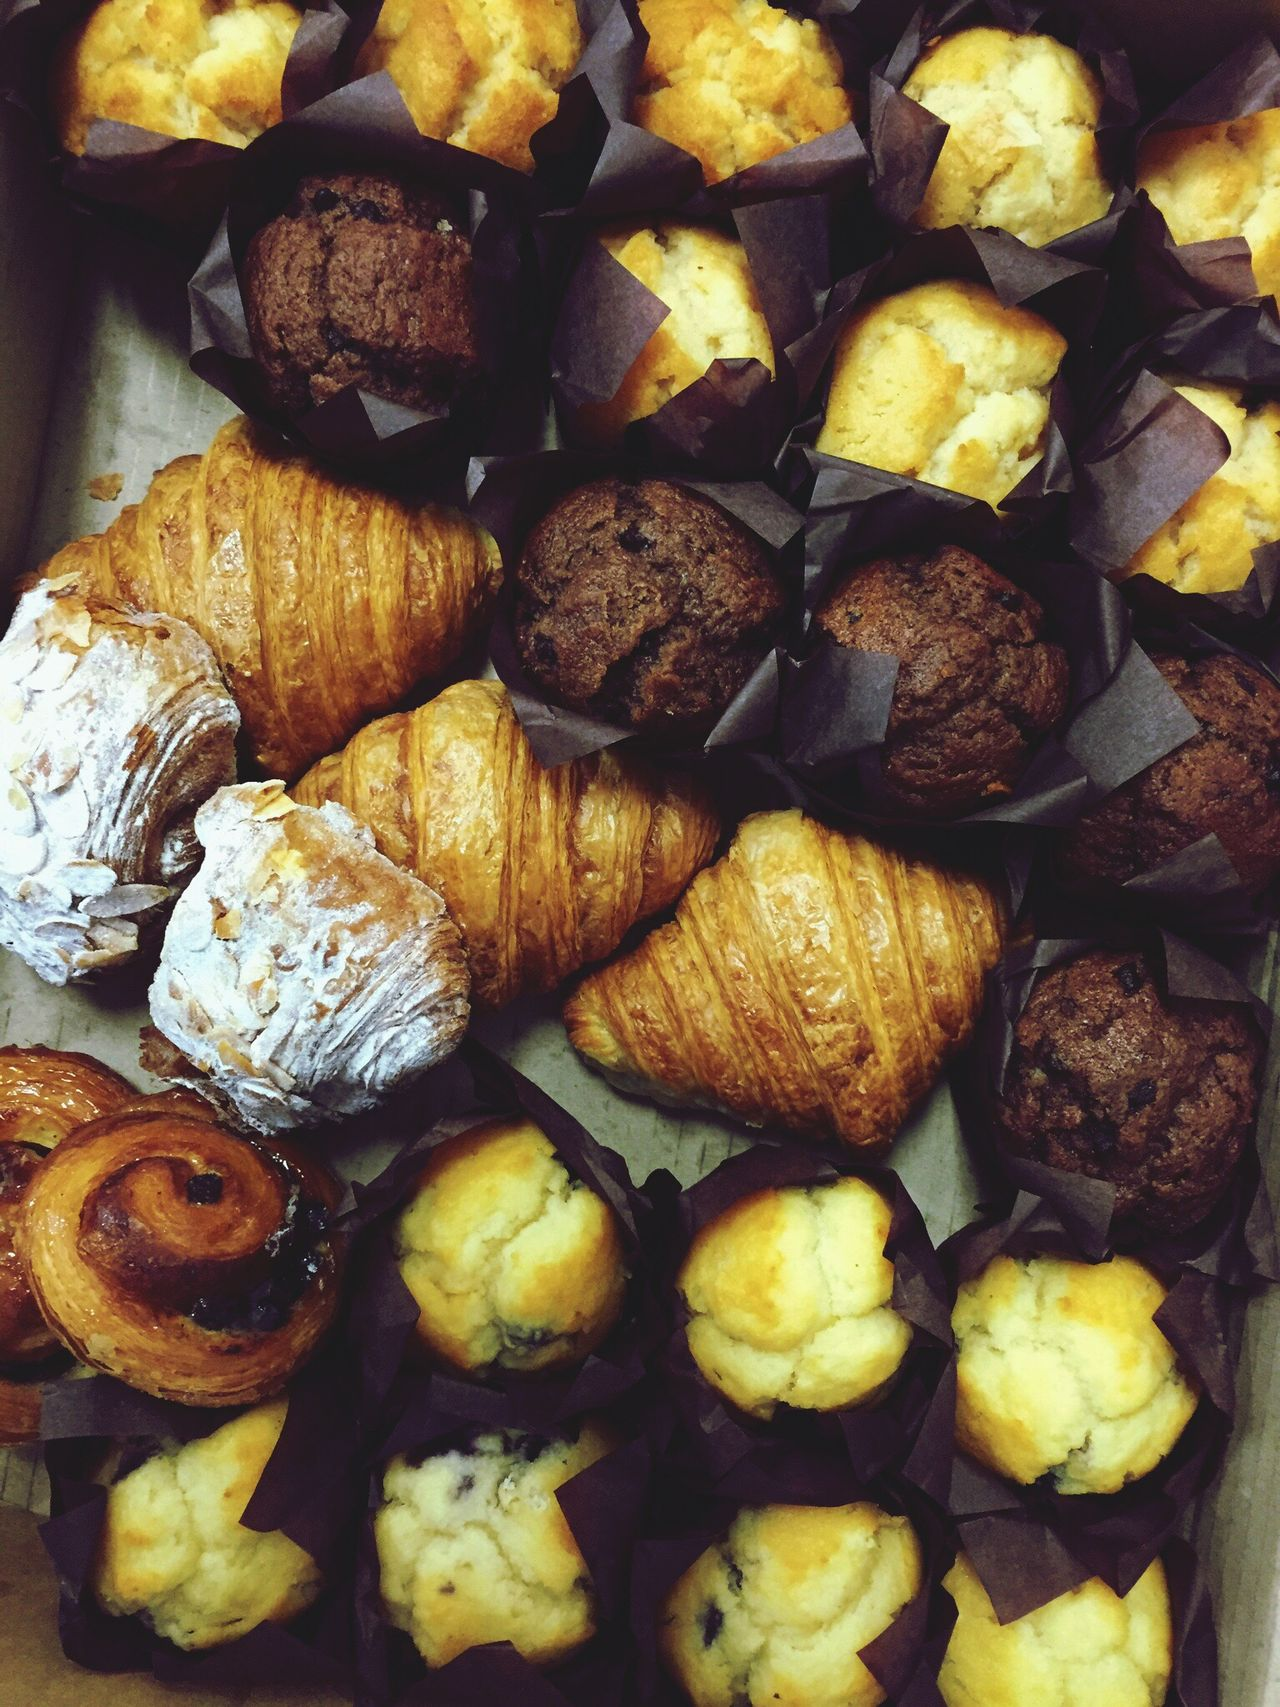 EyeEm Diversity Sweets Cakes Croissants Muffins Baked Goods Pastry Desserts Foodphotography Visual Feast